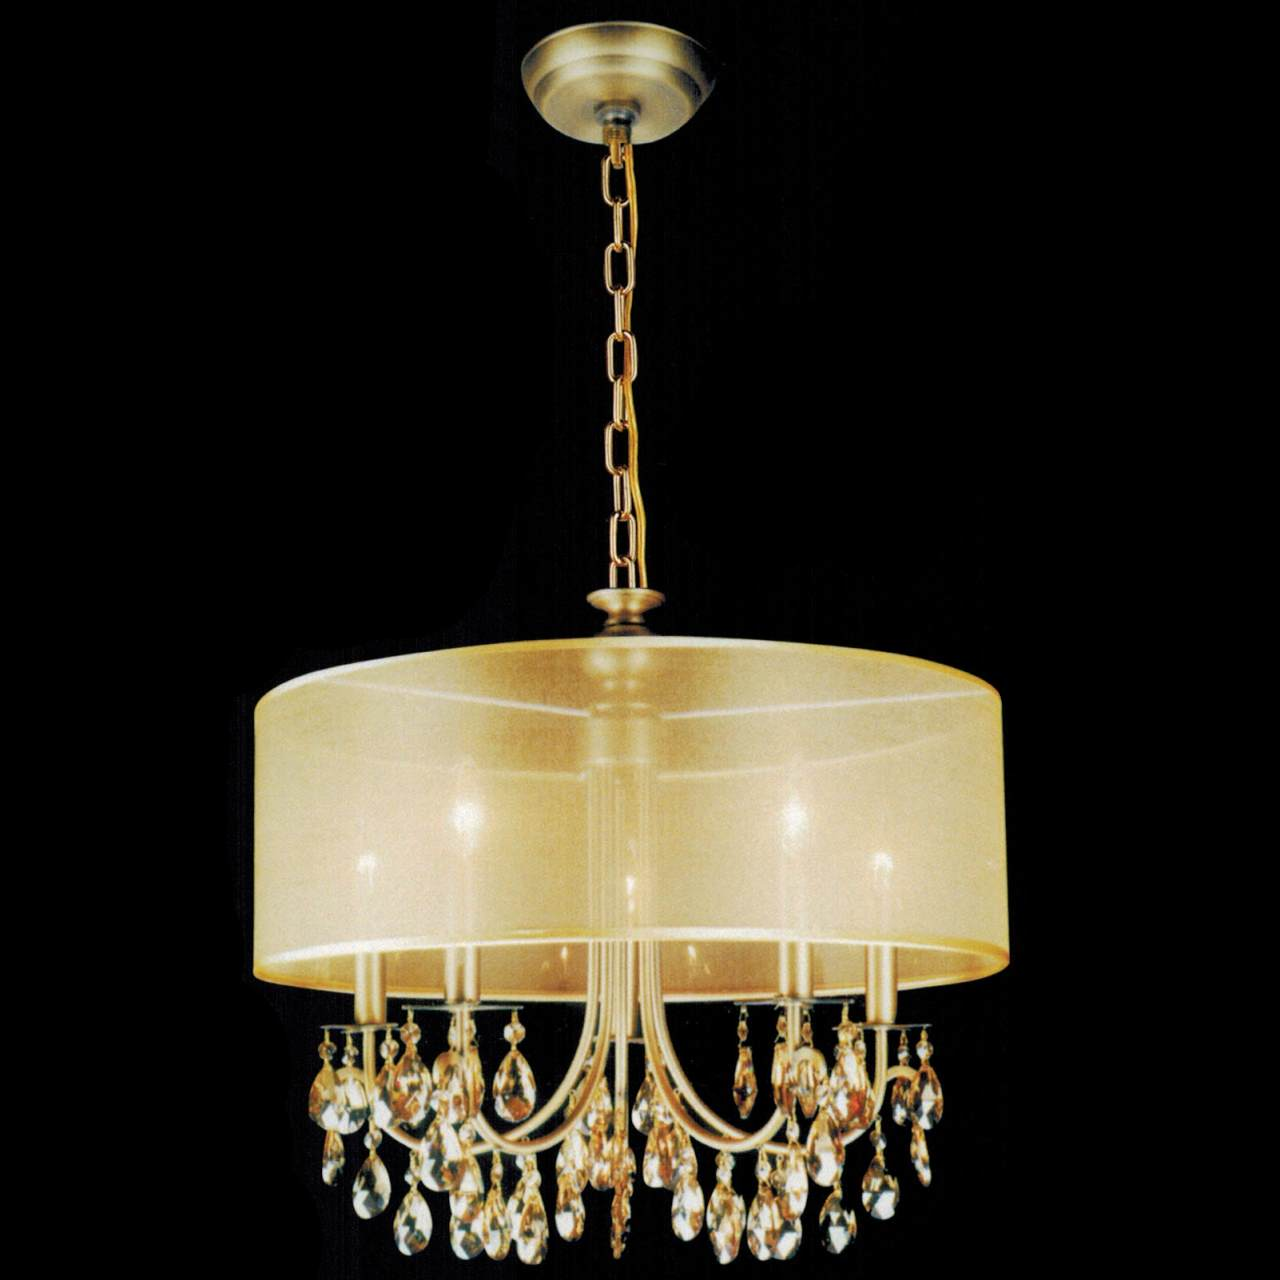 22 Organza Contemporary Round Crystal Pendant Chandelier Antique Brass Finish Champagne Shade And Crystals 5 Lights